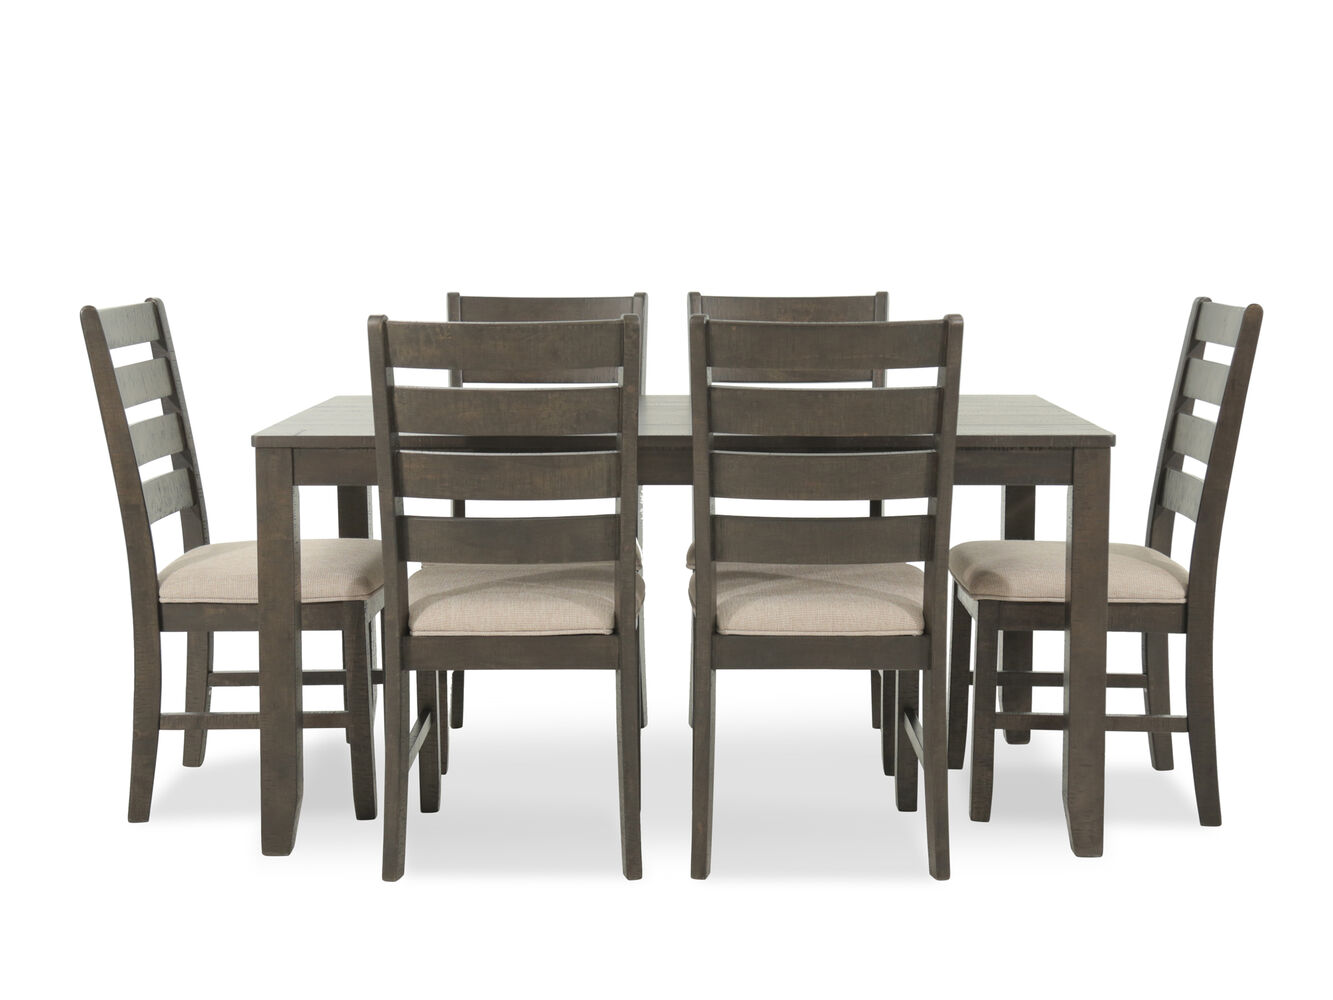 Mathis brothers dining room sets